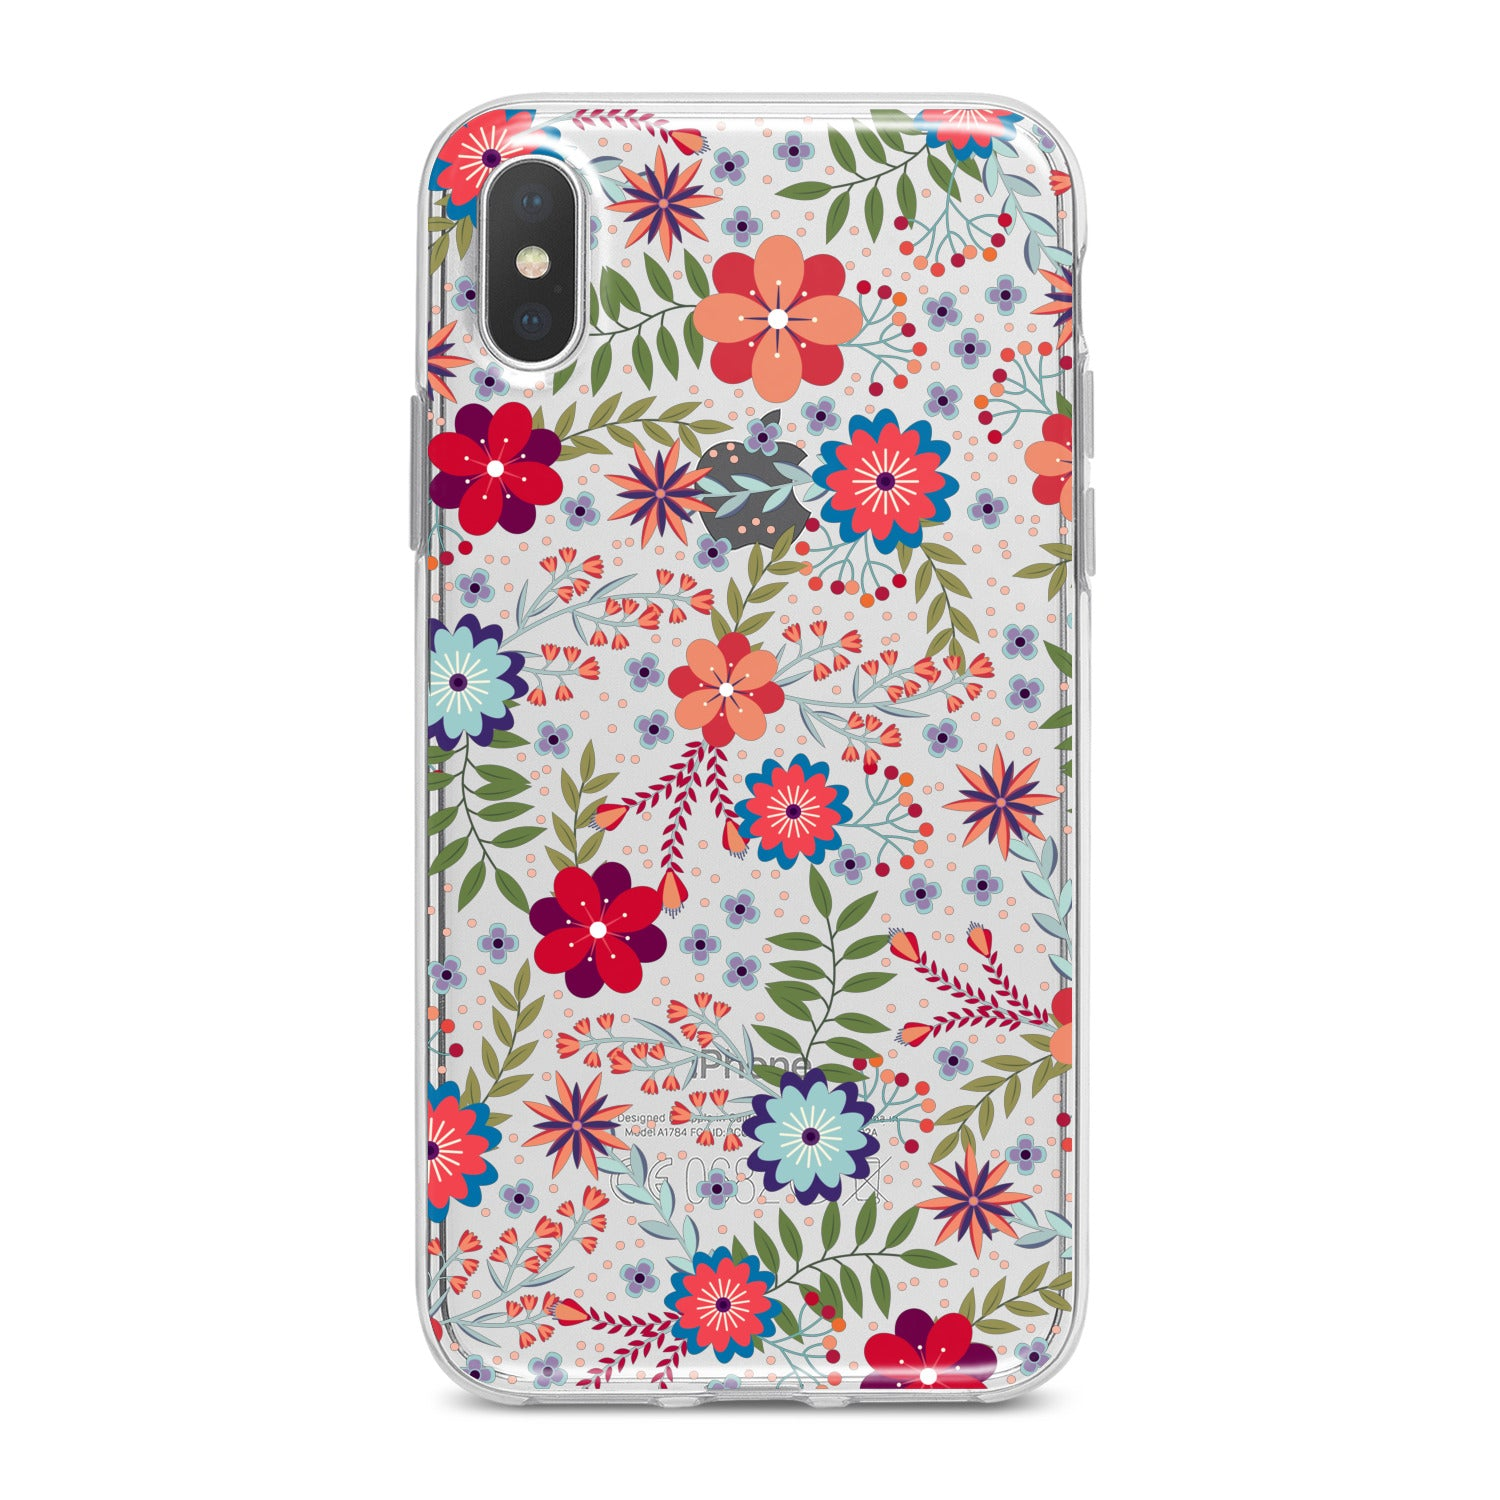 Lex Altern Colorful Floral Pattern Phone Case for your iPhone & Android phone.